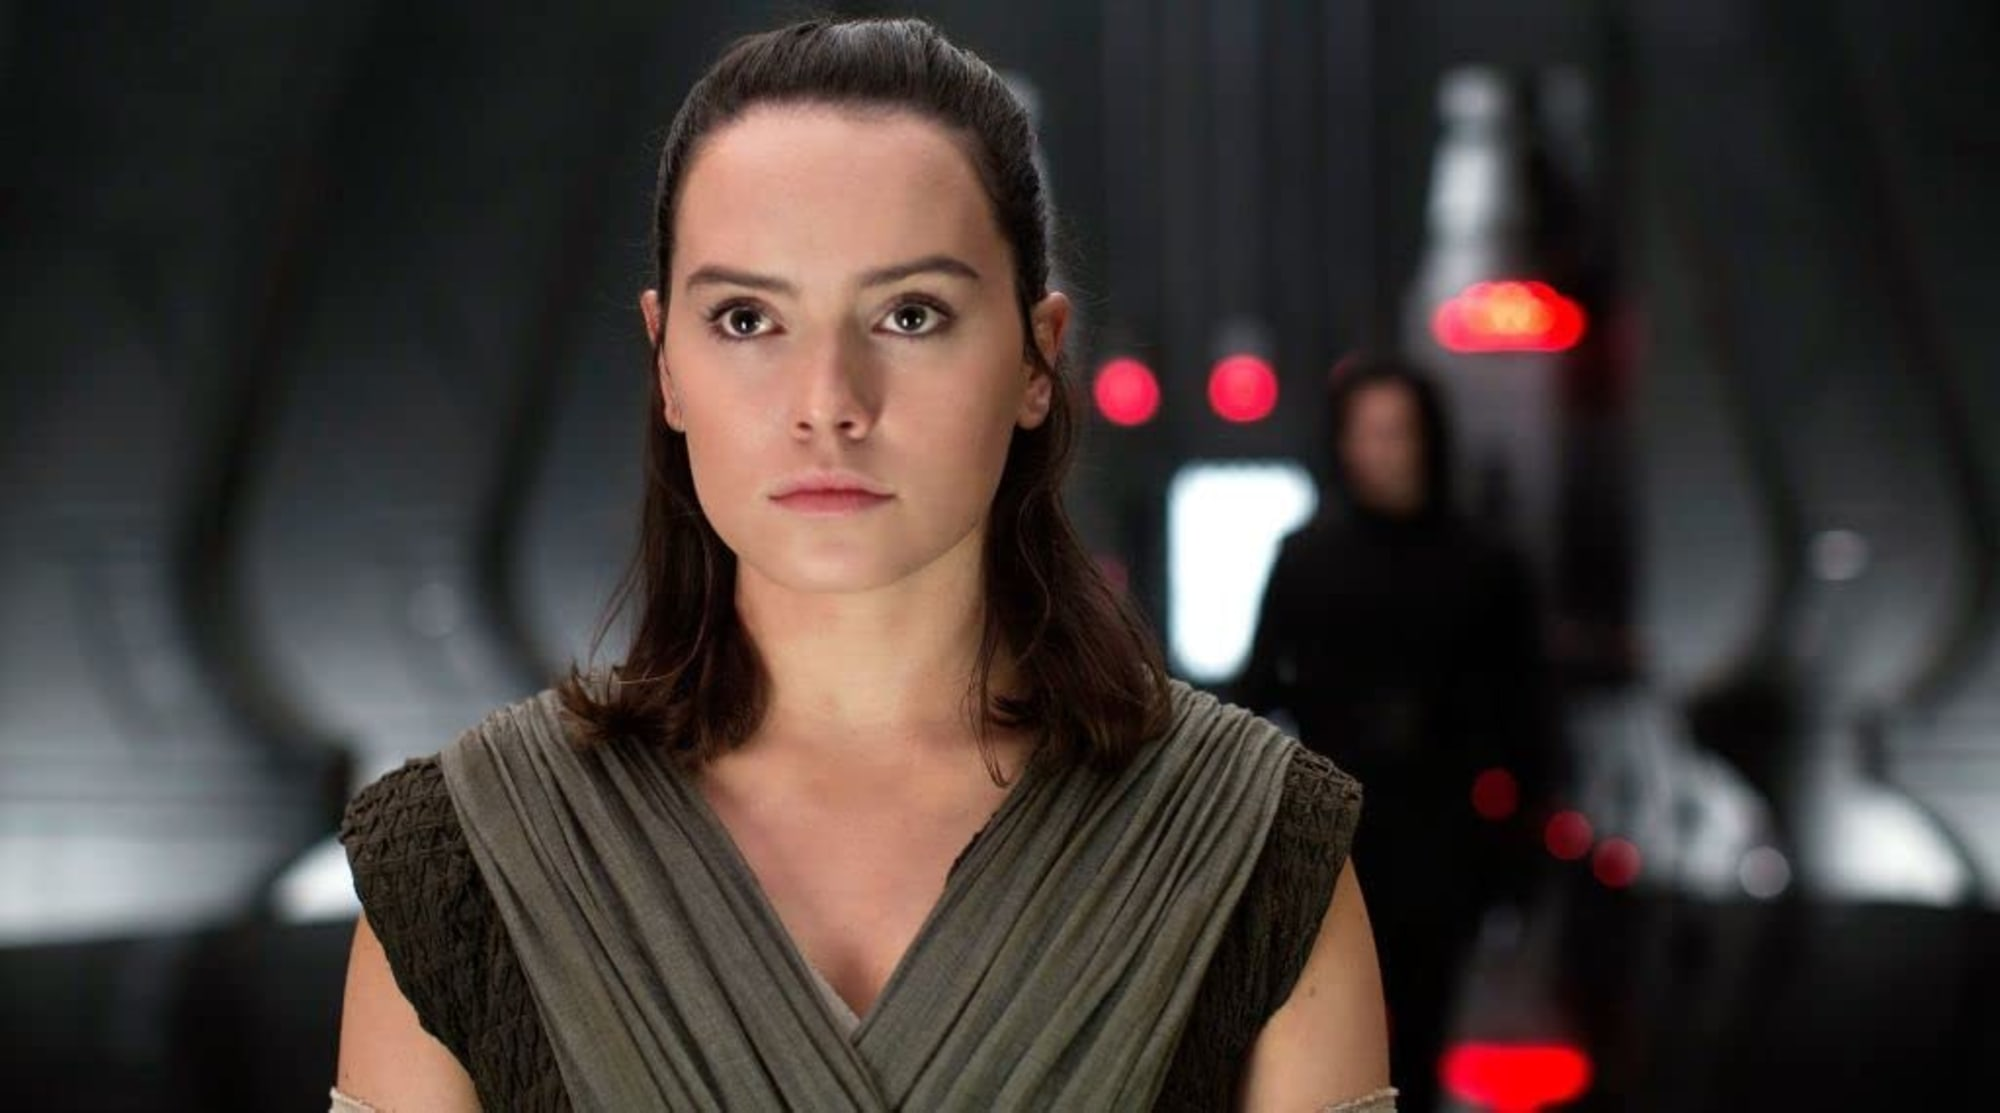 Judge flames the Star Wars sequels in viral court case ruling